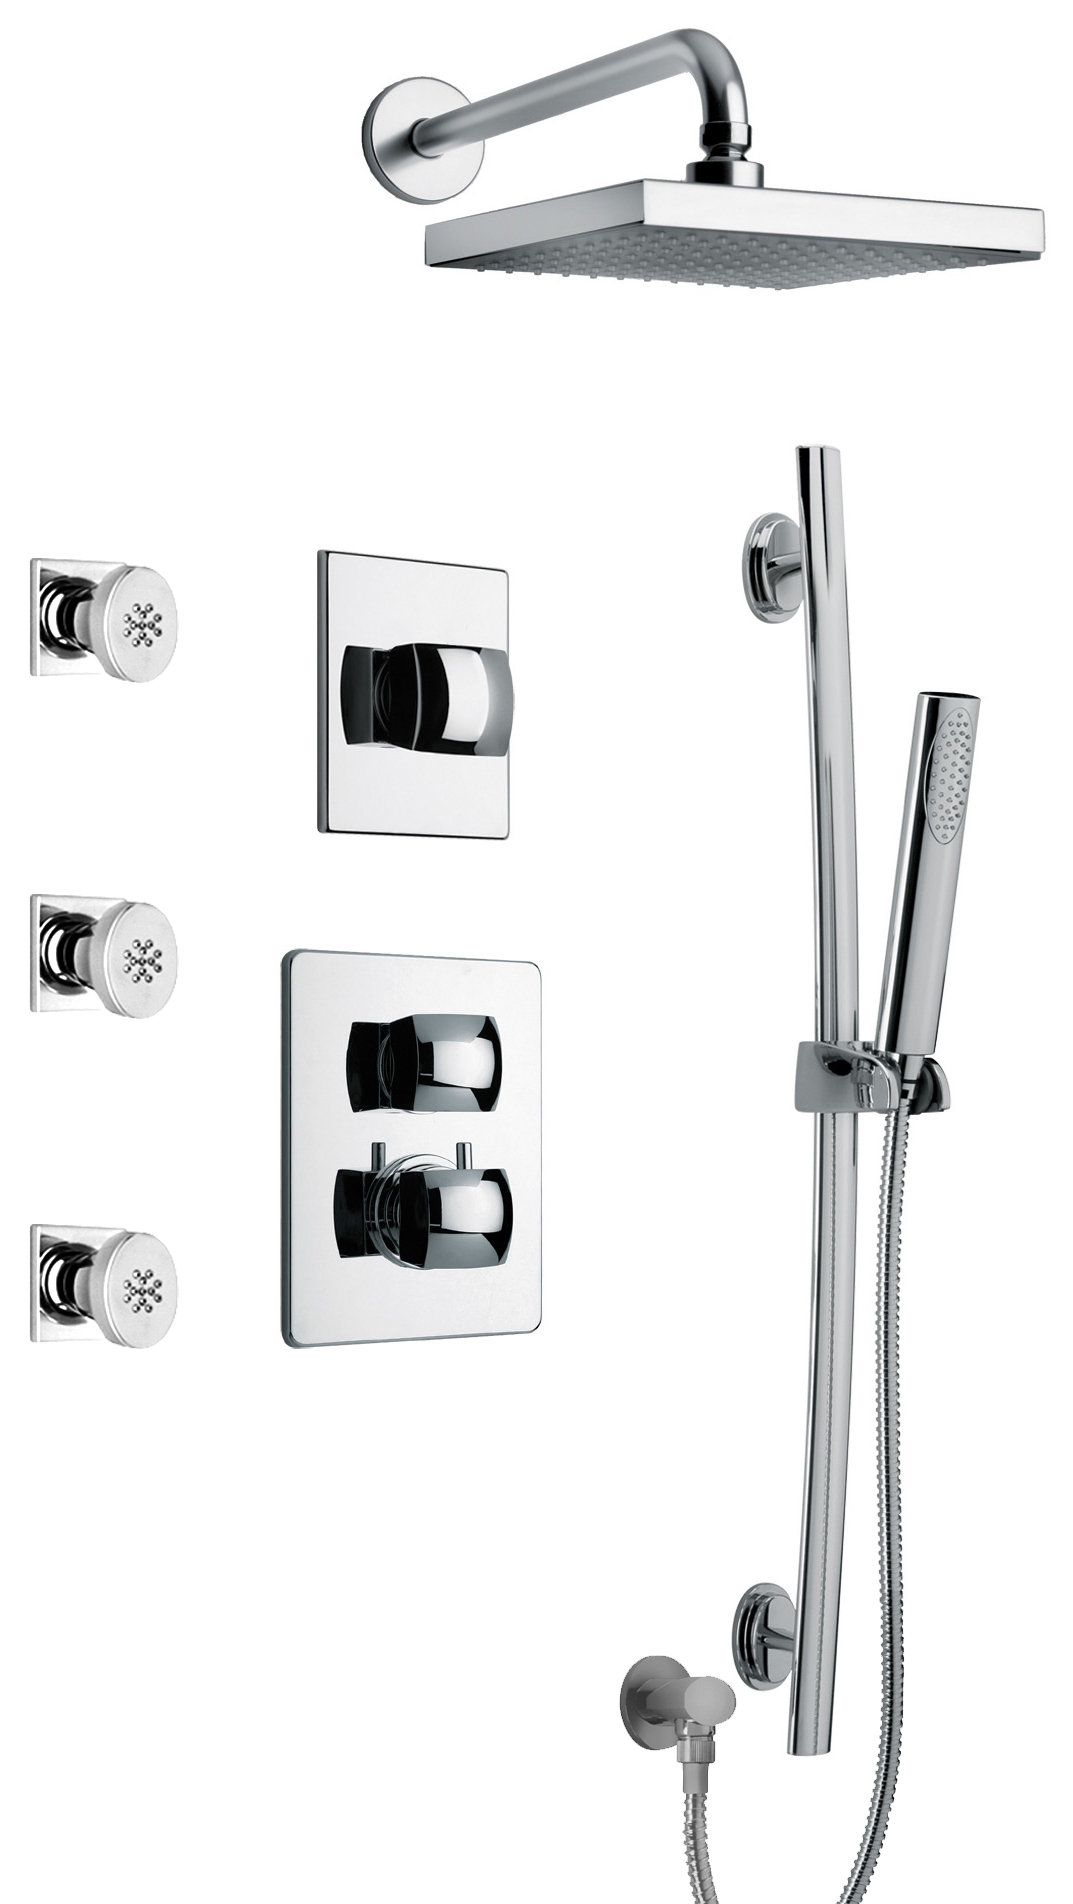 "Thermostatic Shower With 3/4"" Ceramic Disc Volume Control, 3-Way Diverter, Slide Bar, 3 Body Jets in Chrome Finish"